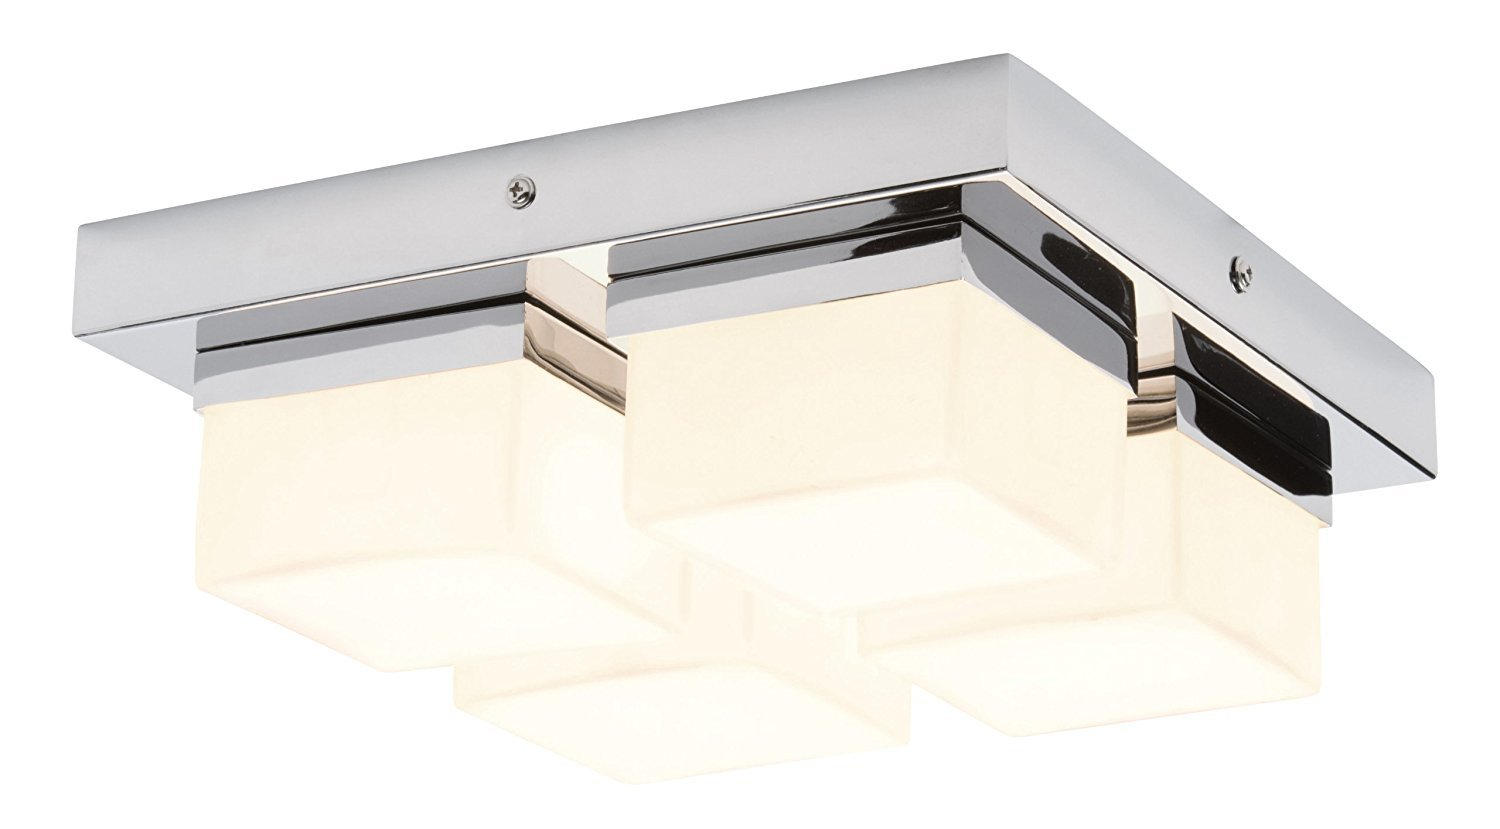 Hinreisend Square Bathroom Ceiling Light Fixtures Pull with size 1500 X 829